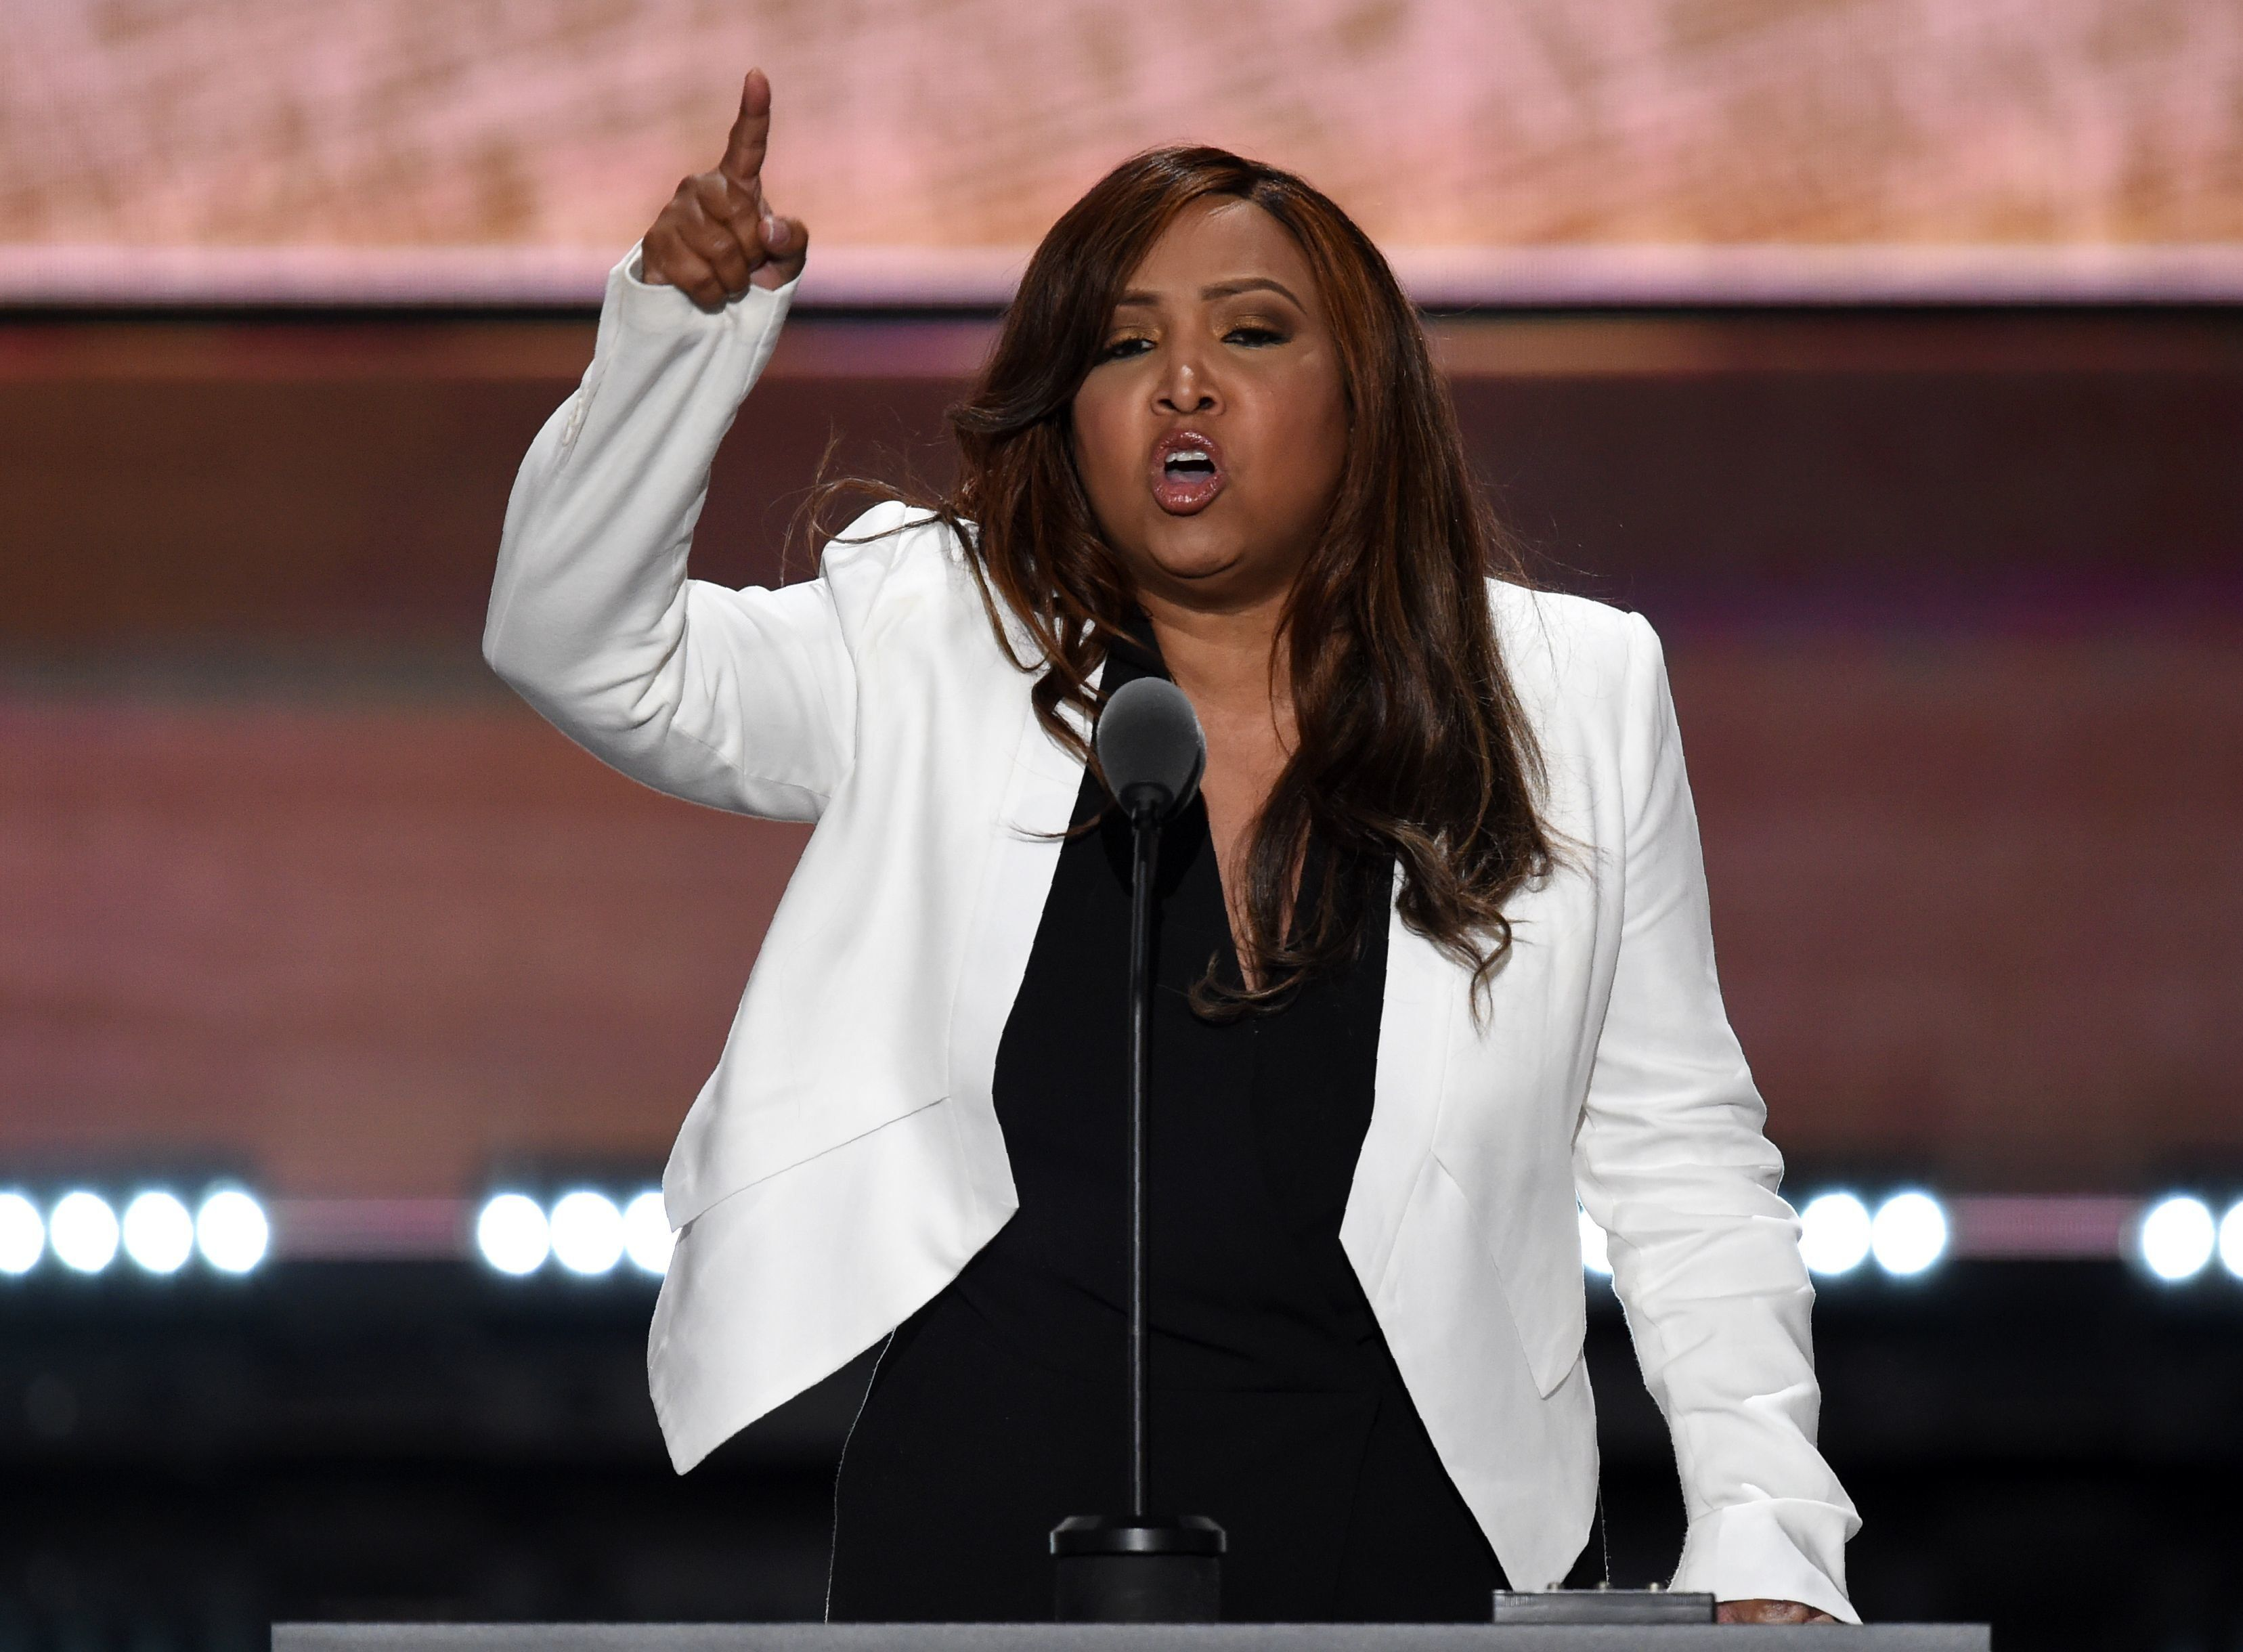 Vice President of The Eric Trump Foundation, Lynne Patton, speaks on the third day of the Republican National Convention in Cleveland, Ohio, on July 20, 2016. / AFP / Timothy A. CLARY        (Photo credit should read TIMOTHY A. CLARY/AFP/Getty Images)